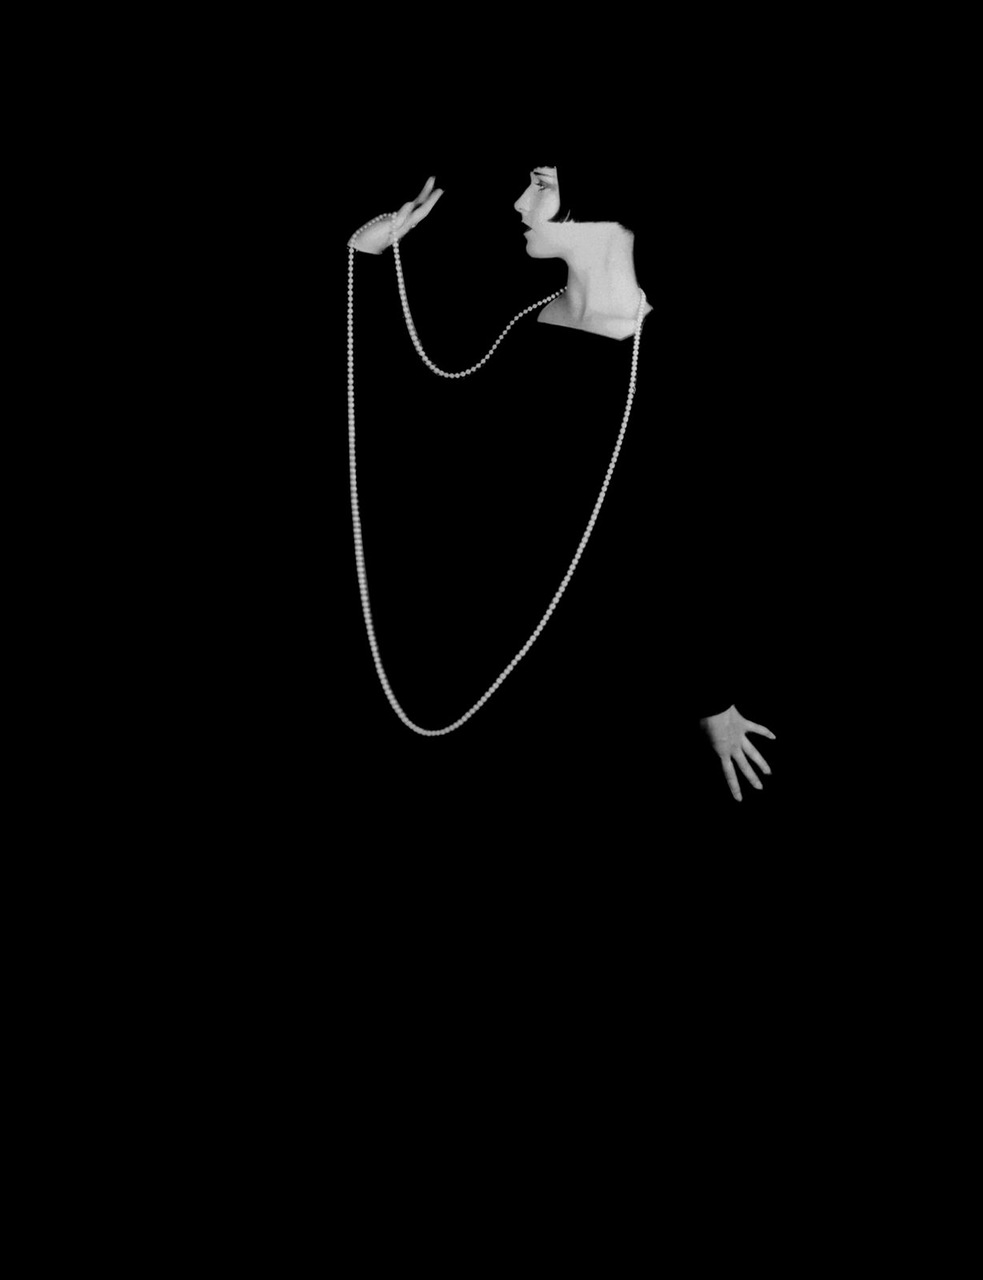 semioticapocalypse: Eugene Robert Richee. American actress Louise Brooks wearing a long necklace that stands out against a black background, 1928 [::SemAp FB || SemAp G+::]